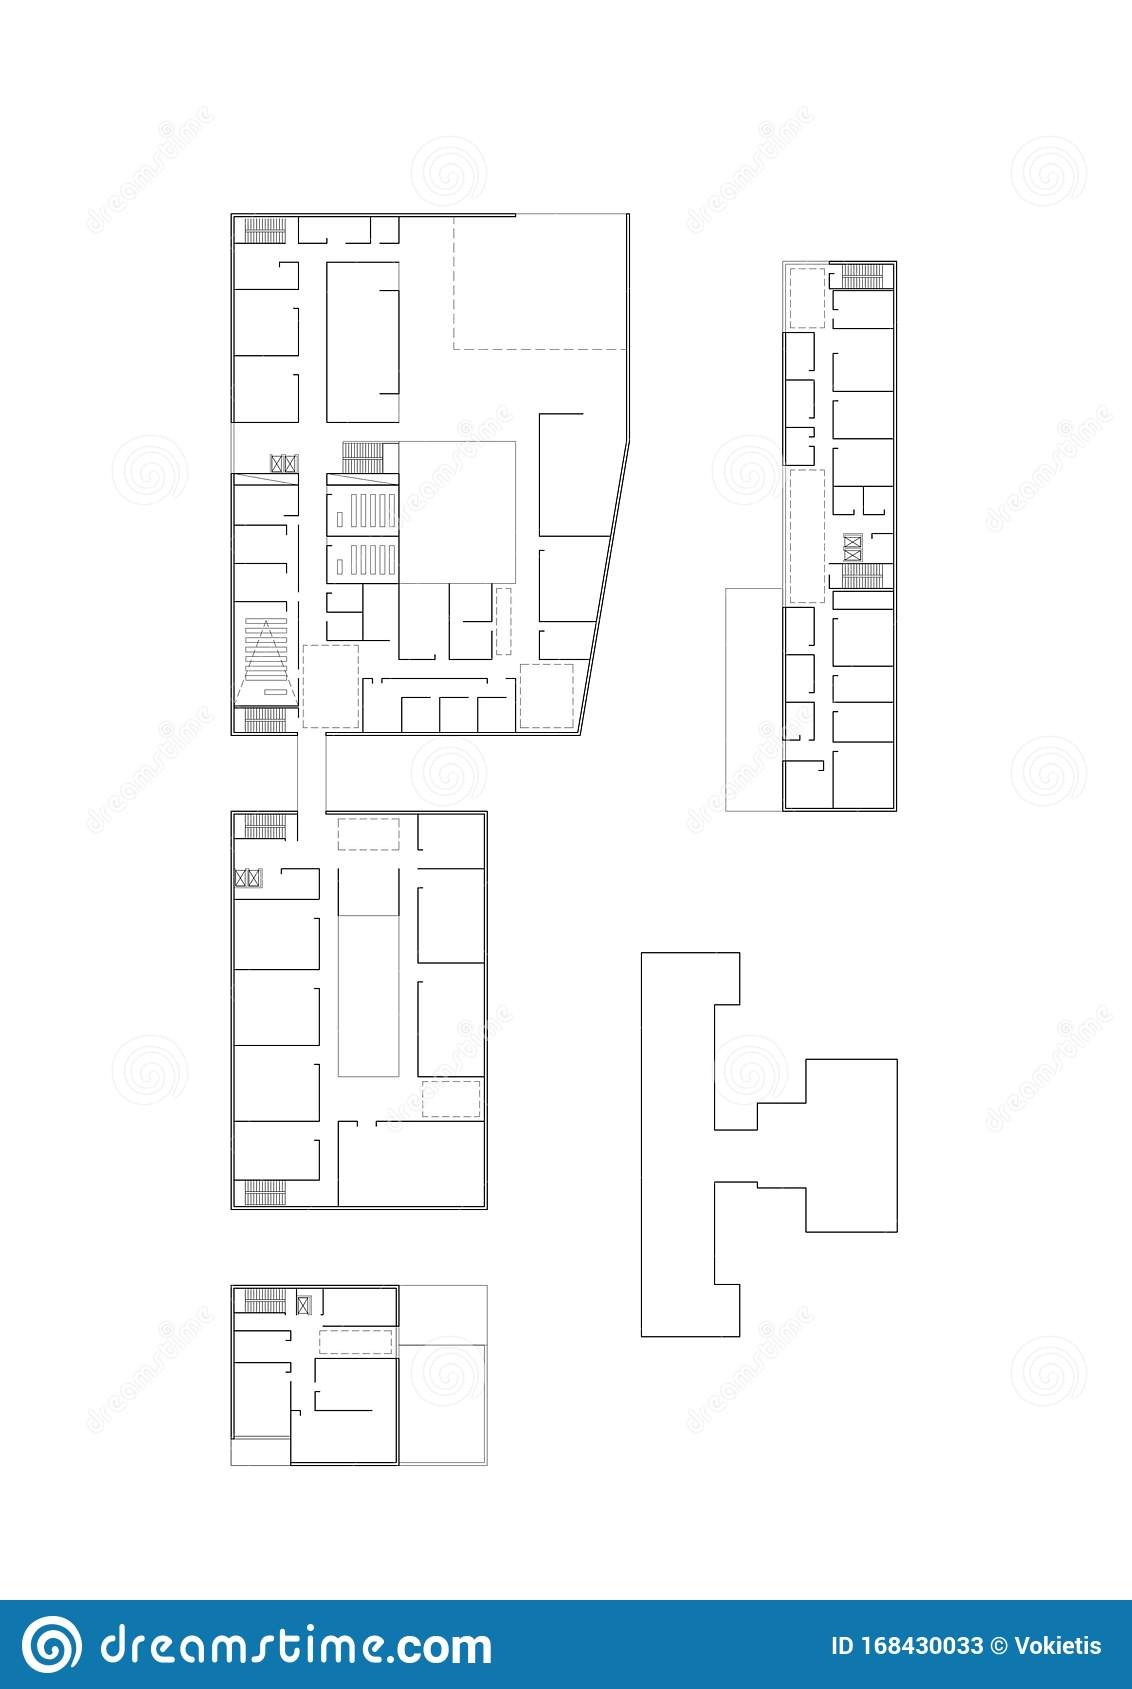 2d Cad Drawing Floor Plan Of The University Building Complex Stock Illustration Illustration Of Architectural Labor 168430033